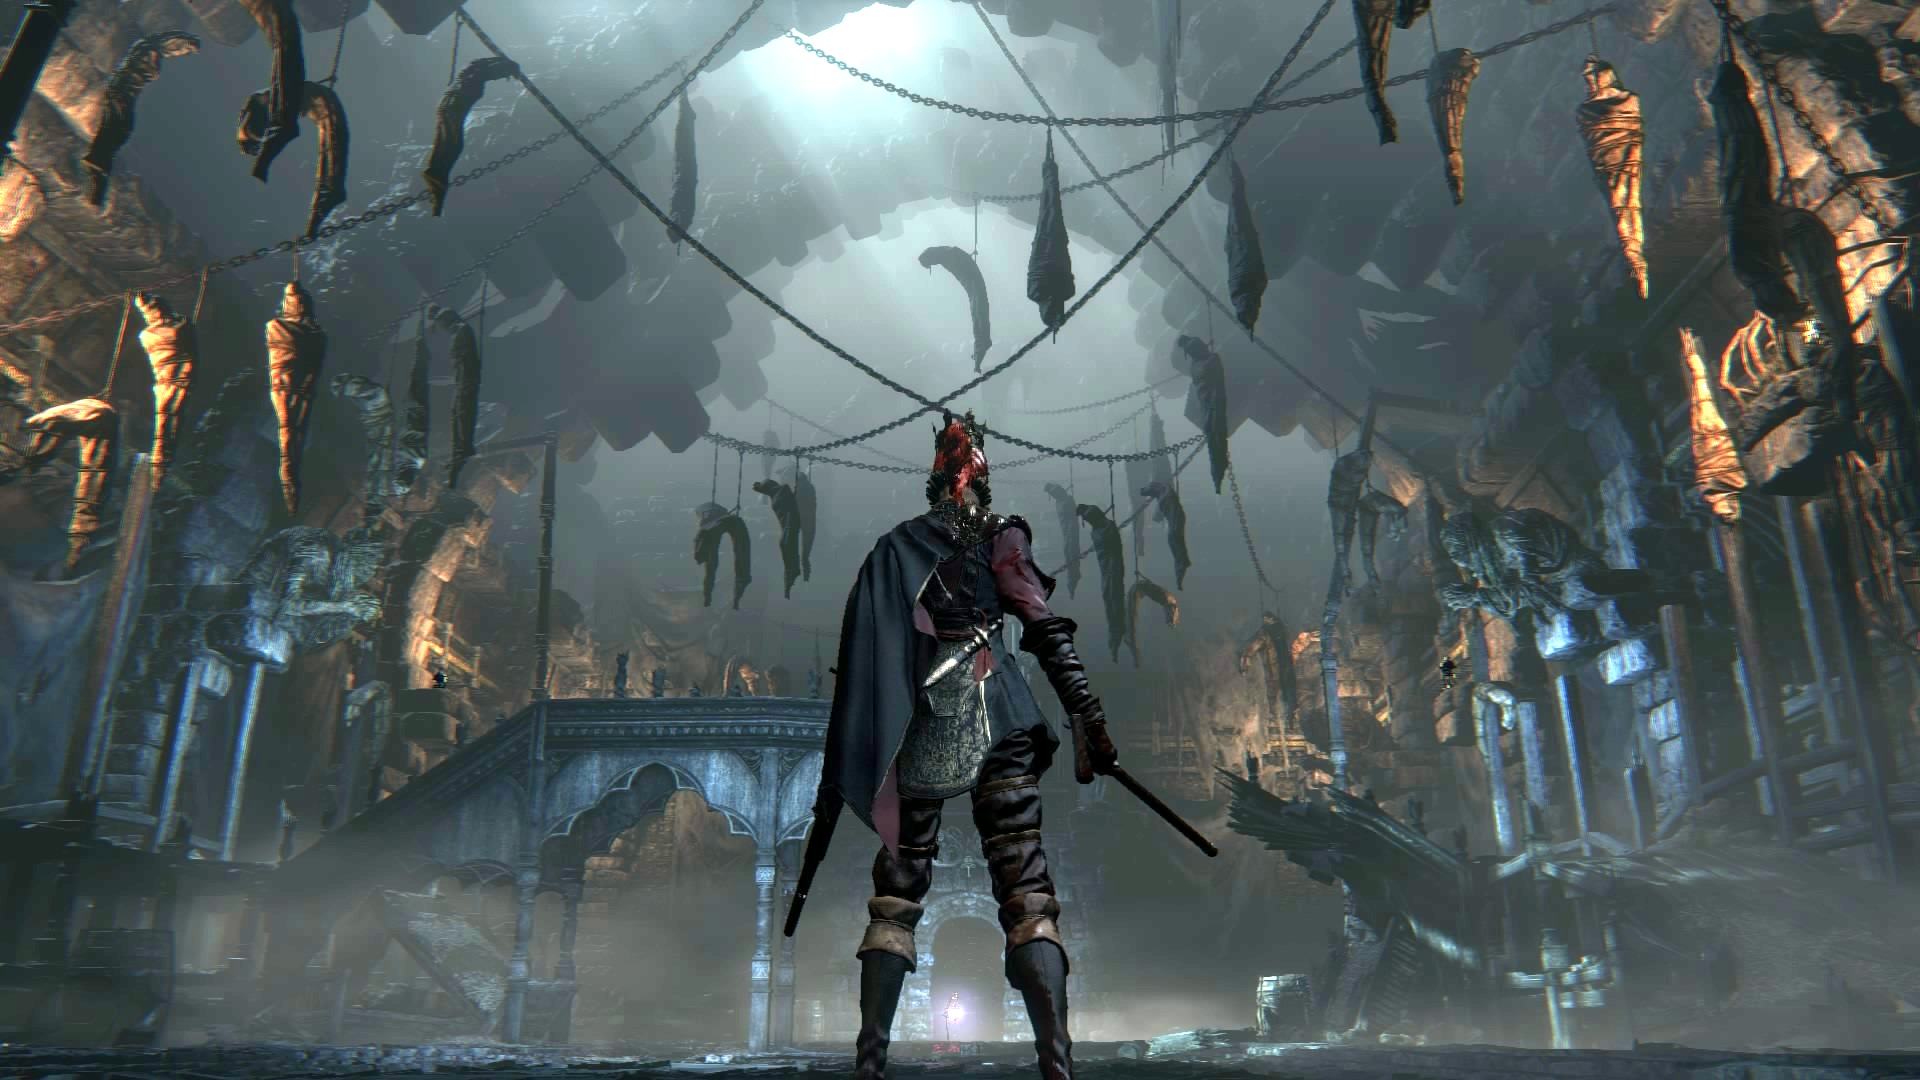 Bloodborne Witch Of Hemwick Boss Guide How To Defeat The Witch